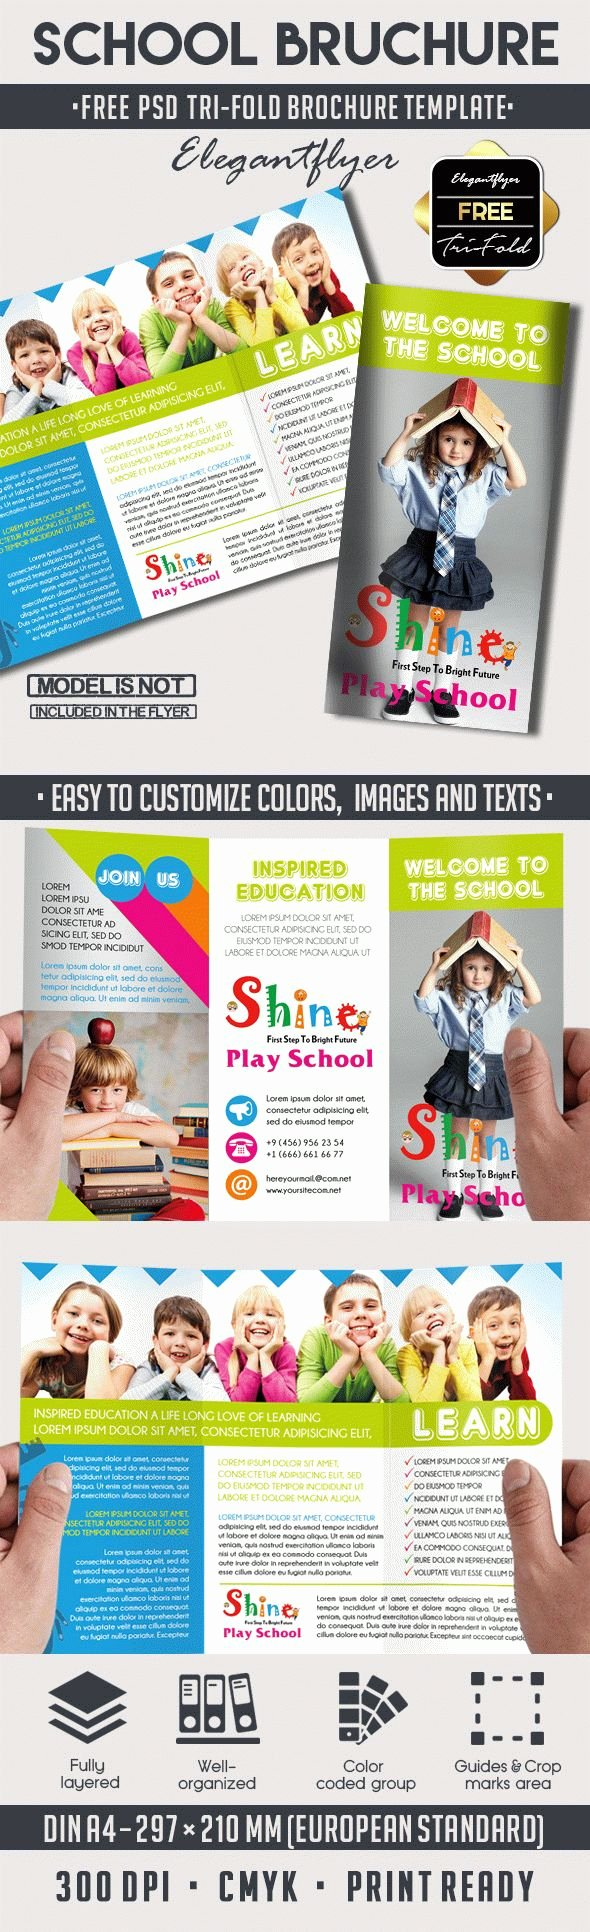 School Brochure Template Free Unique School – Free Psd Tri Fold Psd Brochure Template – by